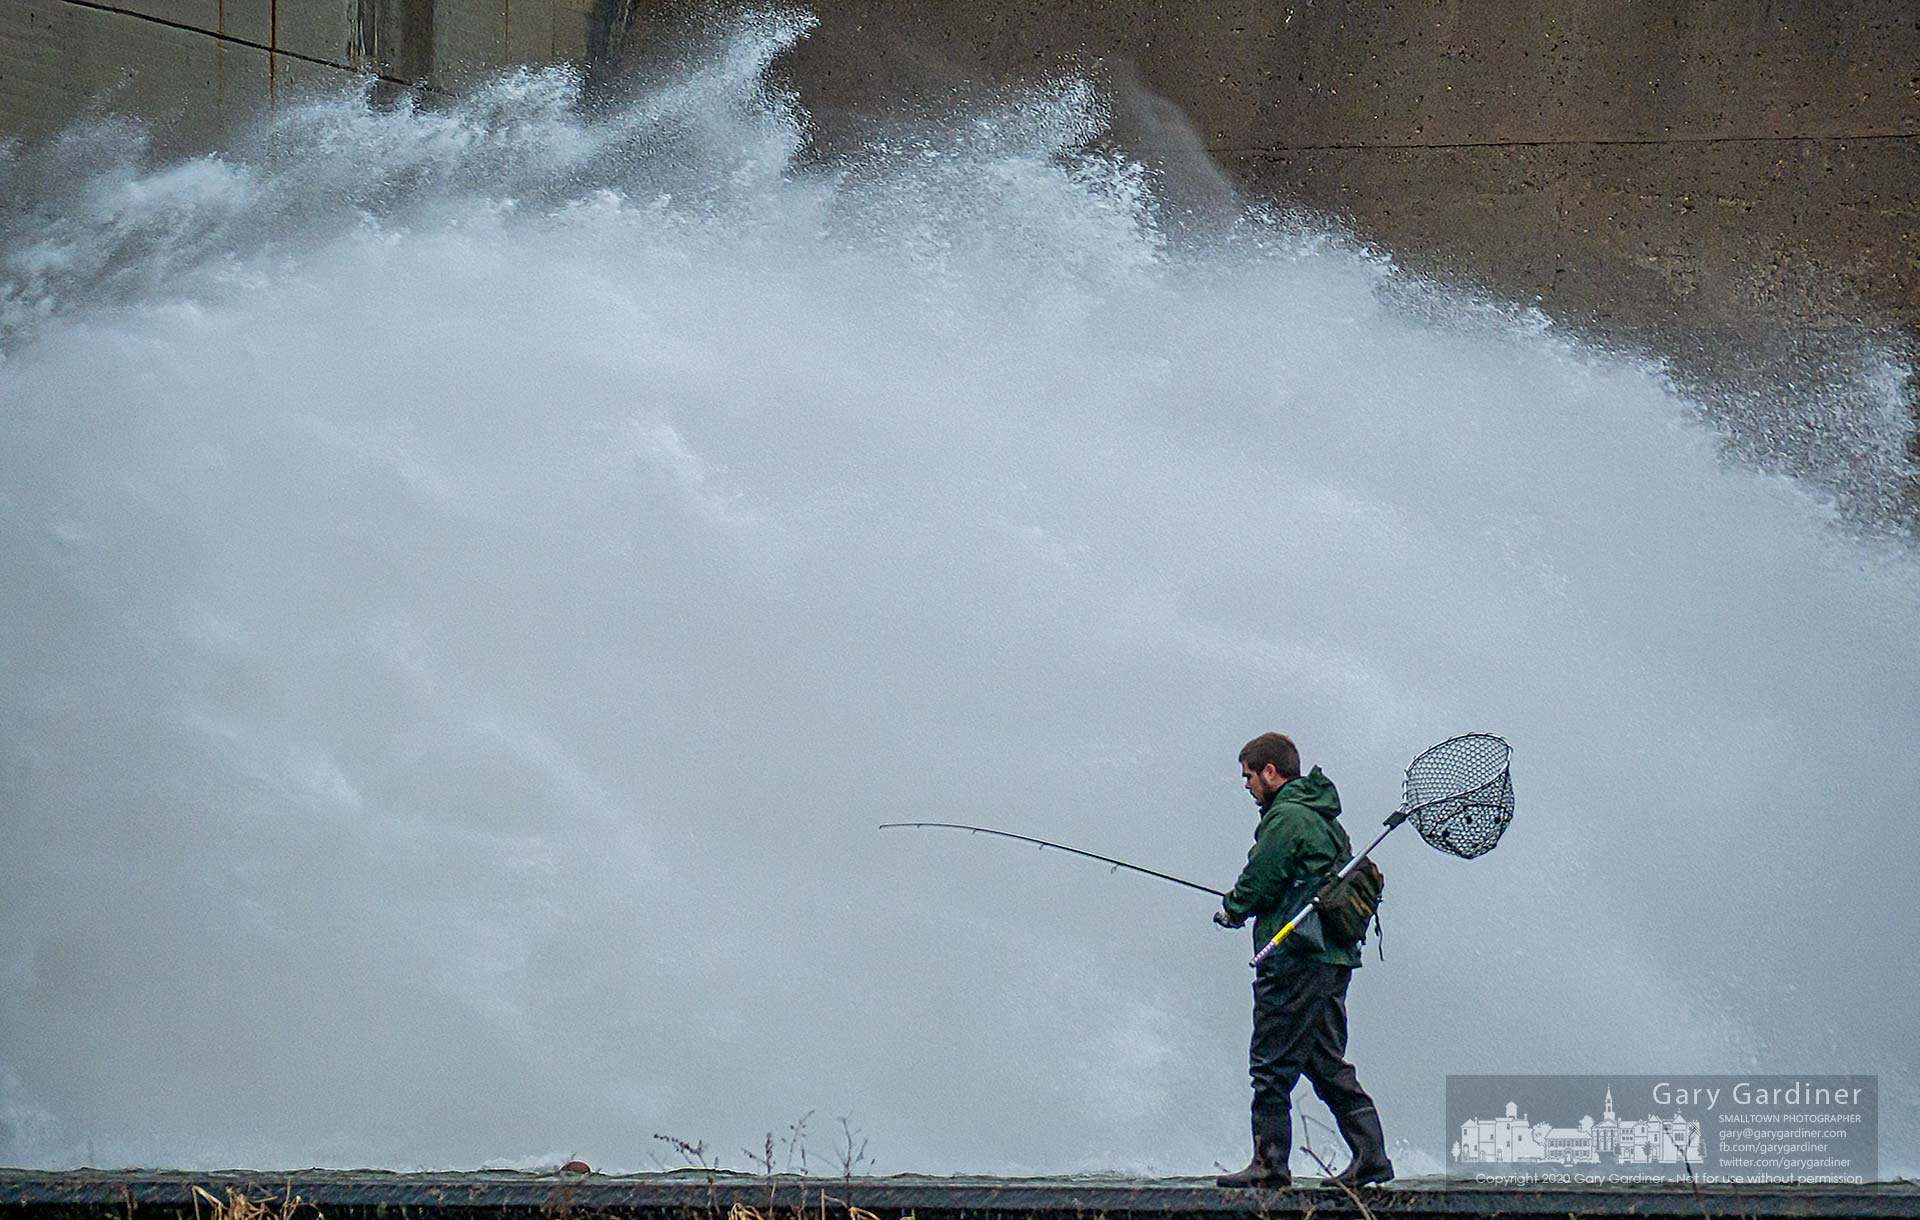 A fisherman casts into the waters below the spillway tunnel at the base of Hoover Dam hoping for better luck than his earlier foray near the center of the spillway. My Final Photo for Feb. 4, 2020.